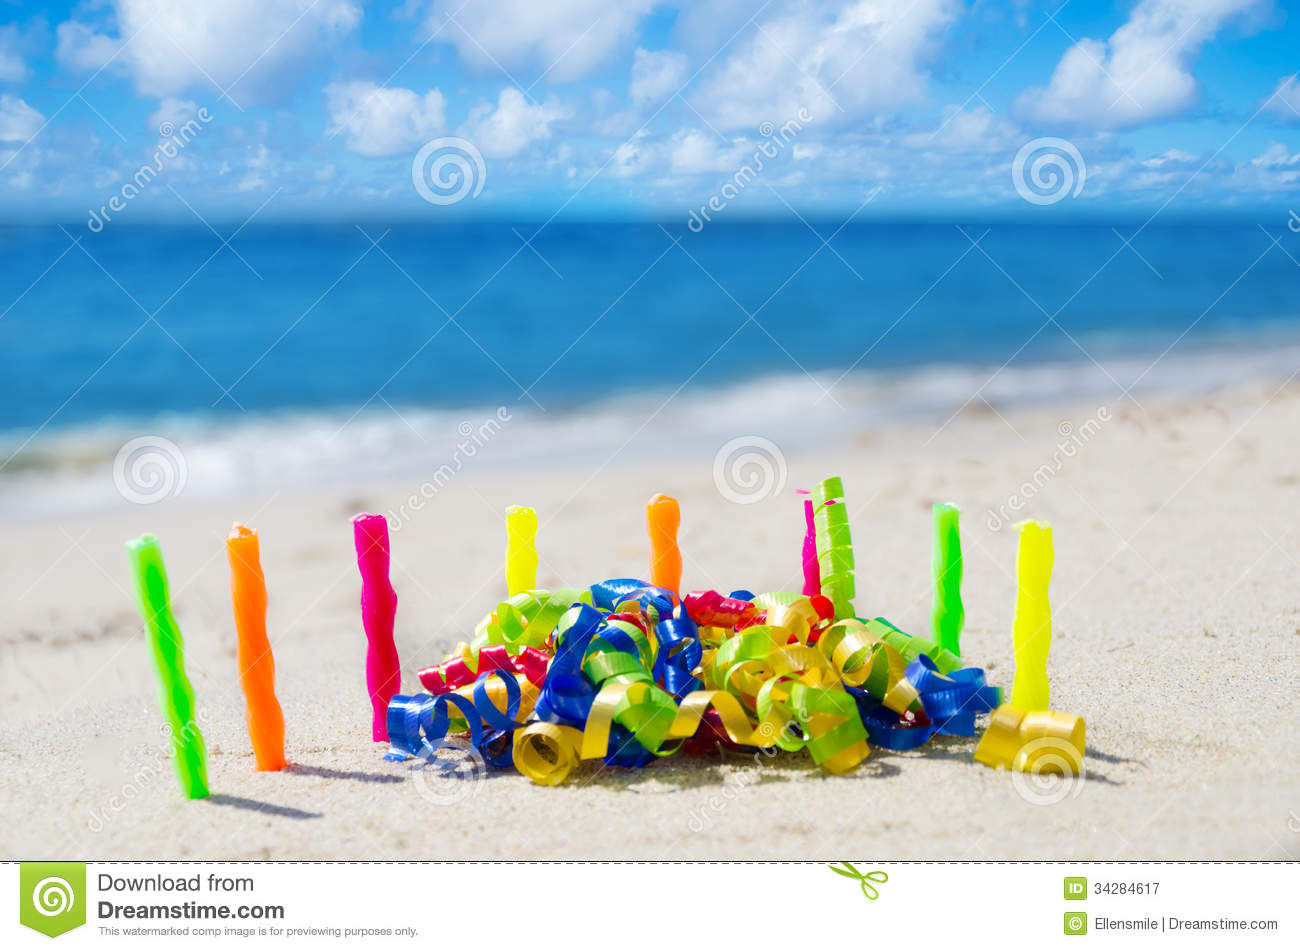 Candles With Birthday Decorations On The Beach Royalty Free Stock